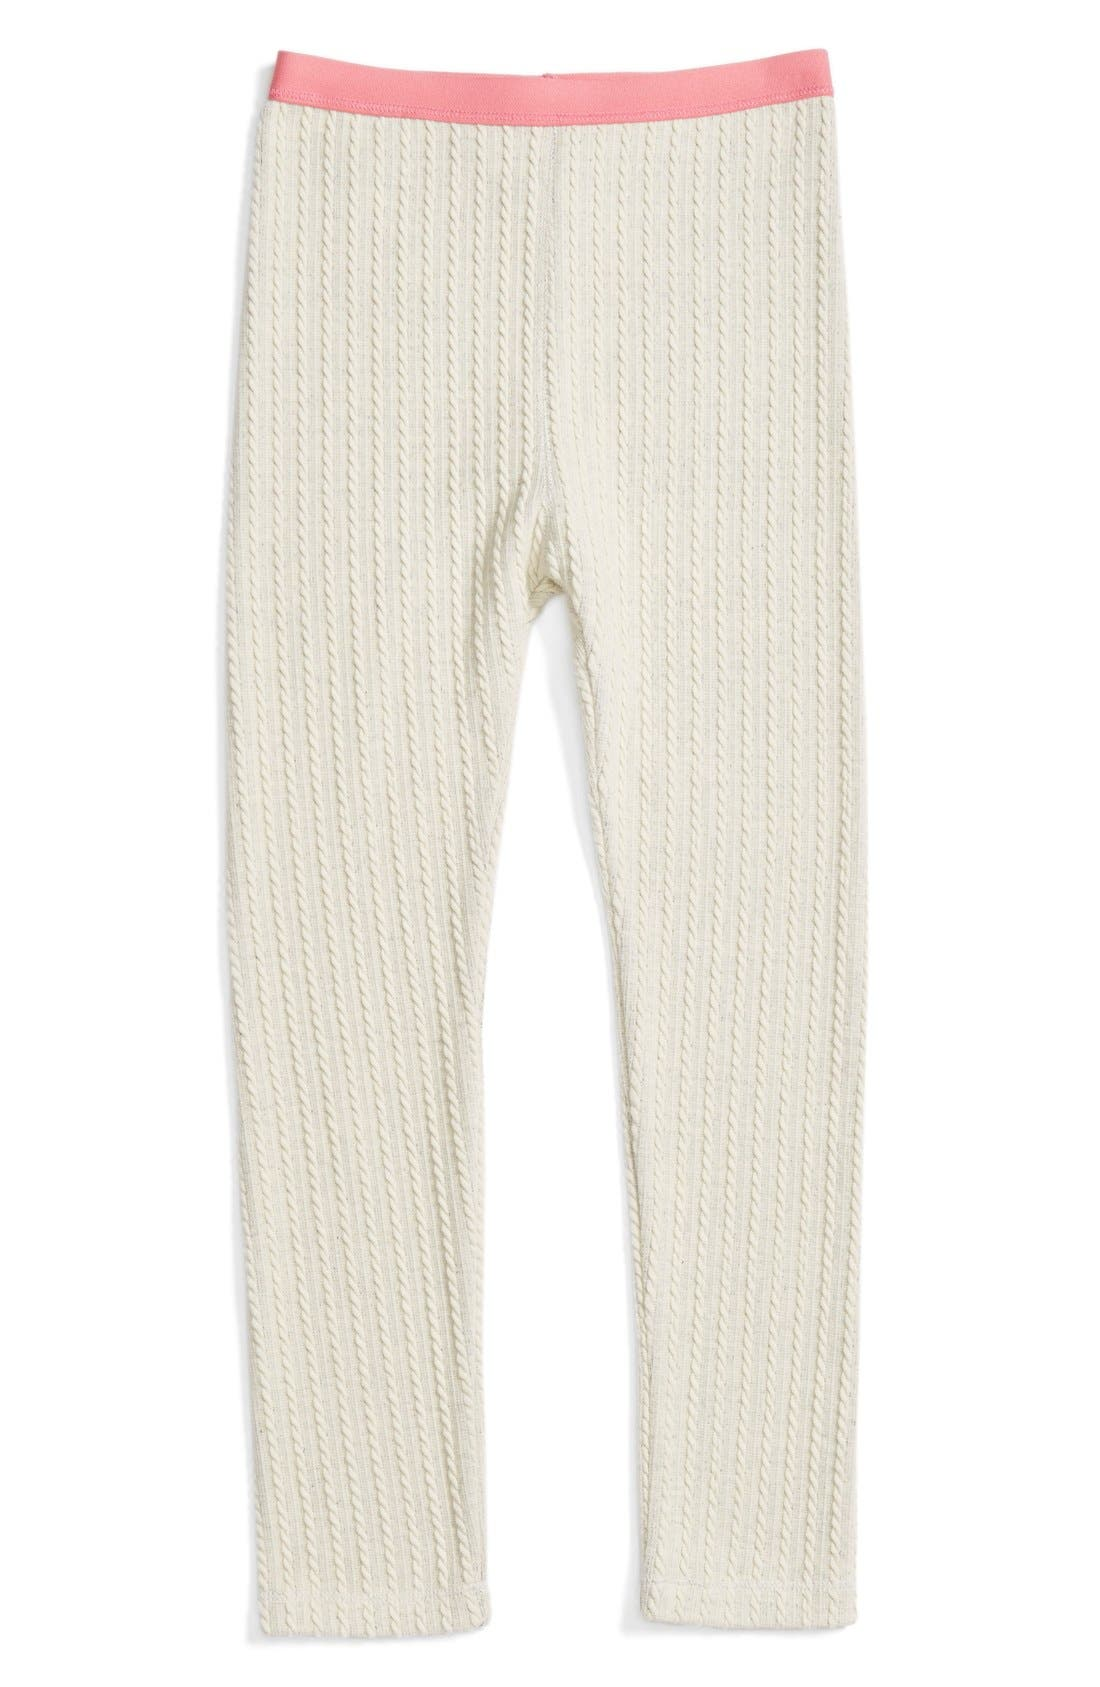 Cable Knit Leggings,                         Main,                         color, Ivory Vanilla